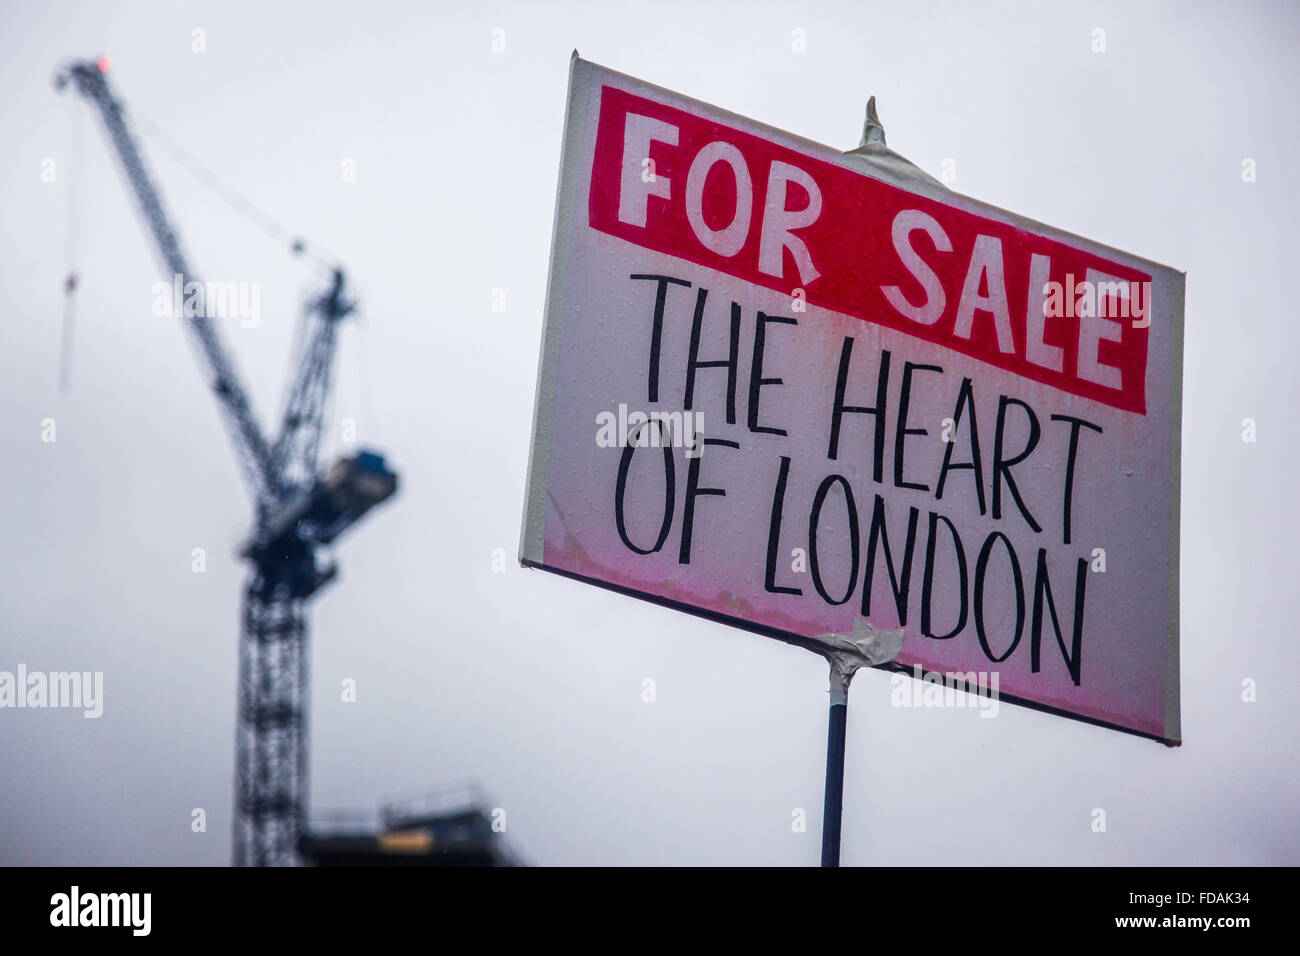 Homemade placard against London gentrification at 'March for Homes' demo, London, UK - Stock Image